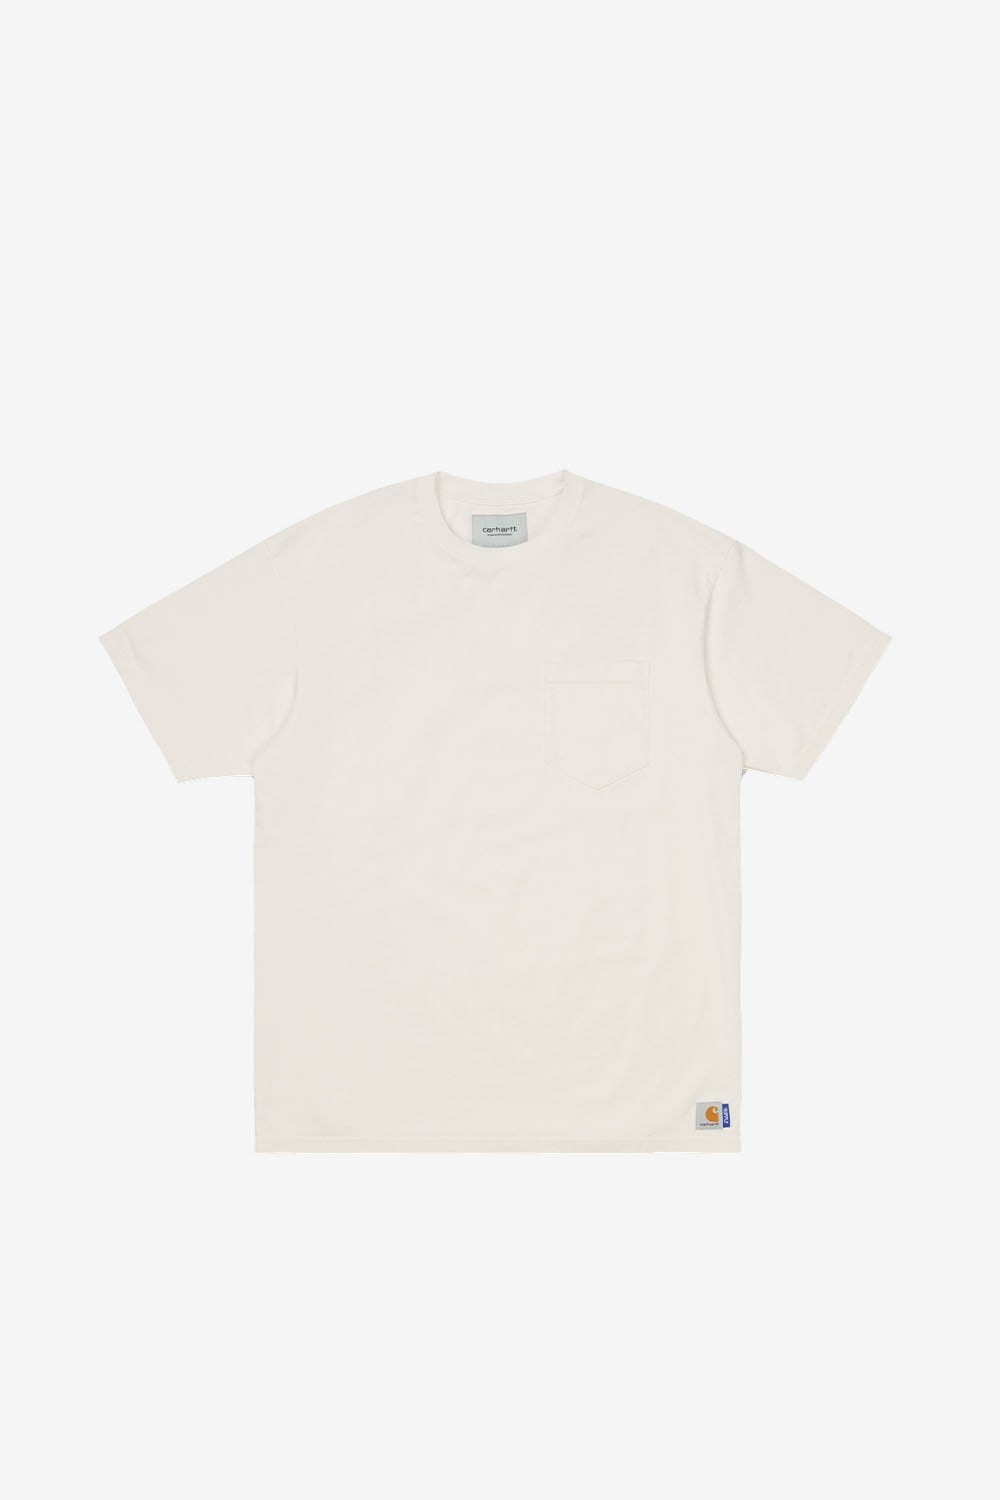 Carhartt WIP Apparel x Supply S/S Pocket Loose T-shirt (Pigment Dyed)